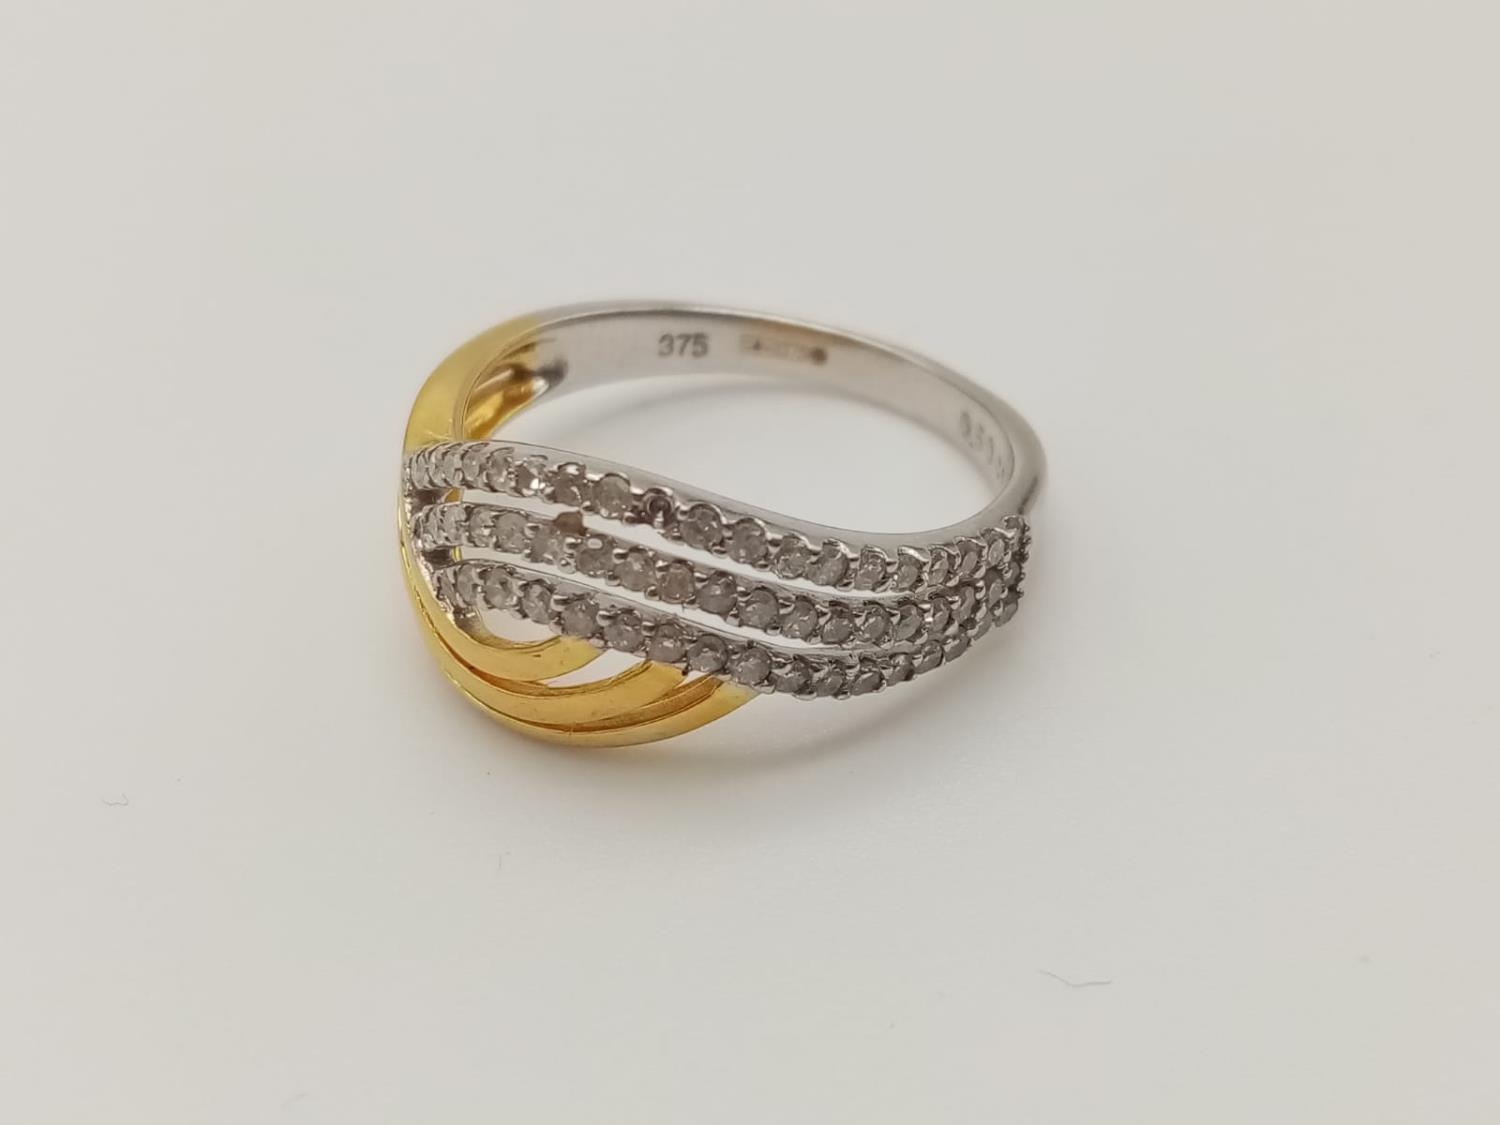 9k yellow and white gold diamond set ring with 0.50ct diamonds, weight 3.2g and size P - Image 2 of 7